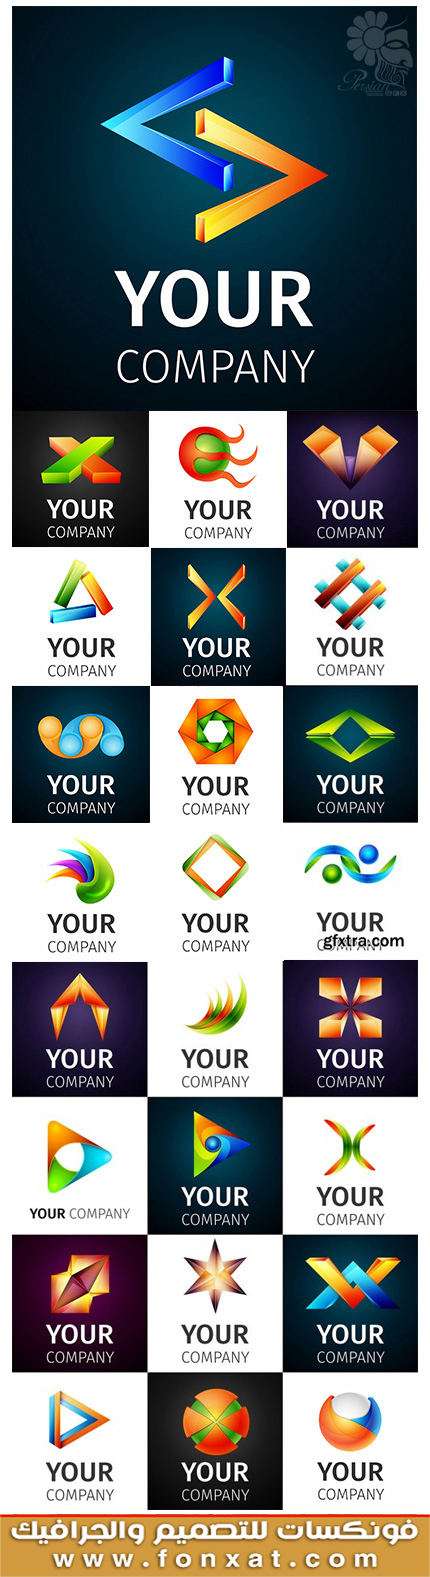 Download Images Vector business logo with abstract designs